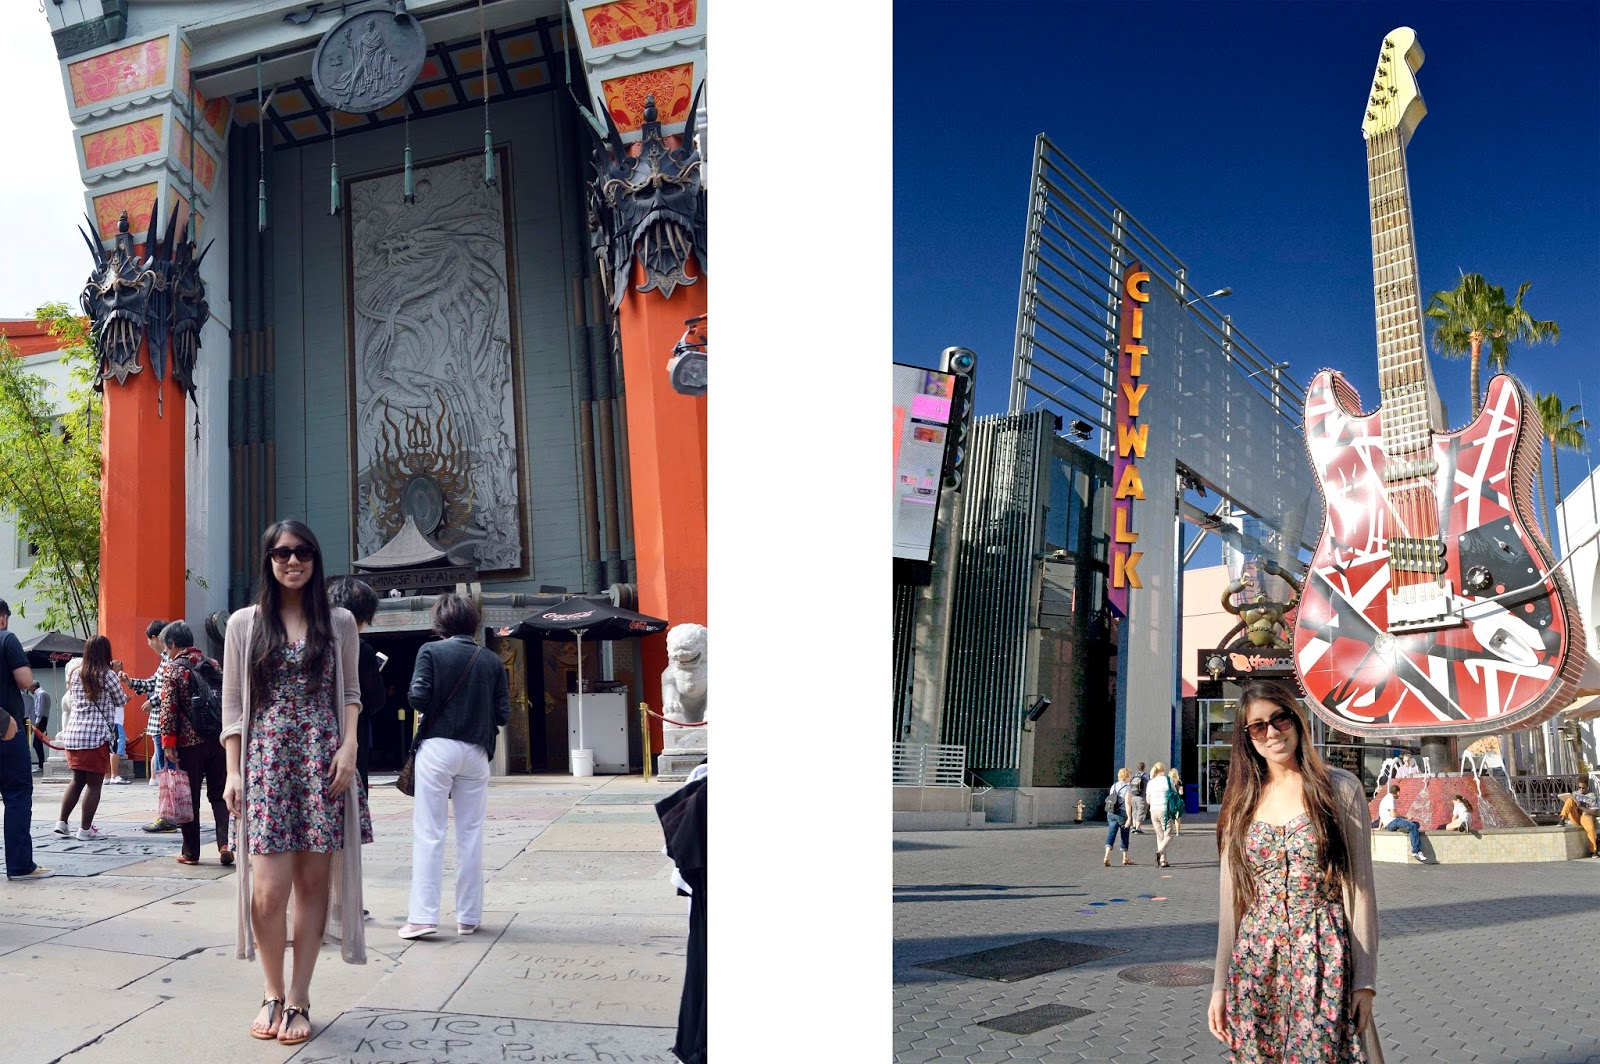 silvia-armas-usa-diary-trip-sunset-travel-fashion-blogger-ecuador-latina-las-vegas-los-angeles-texas-california-style-landscapes-family-hollywood-citywalk-chinese-theater